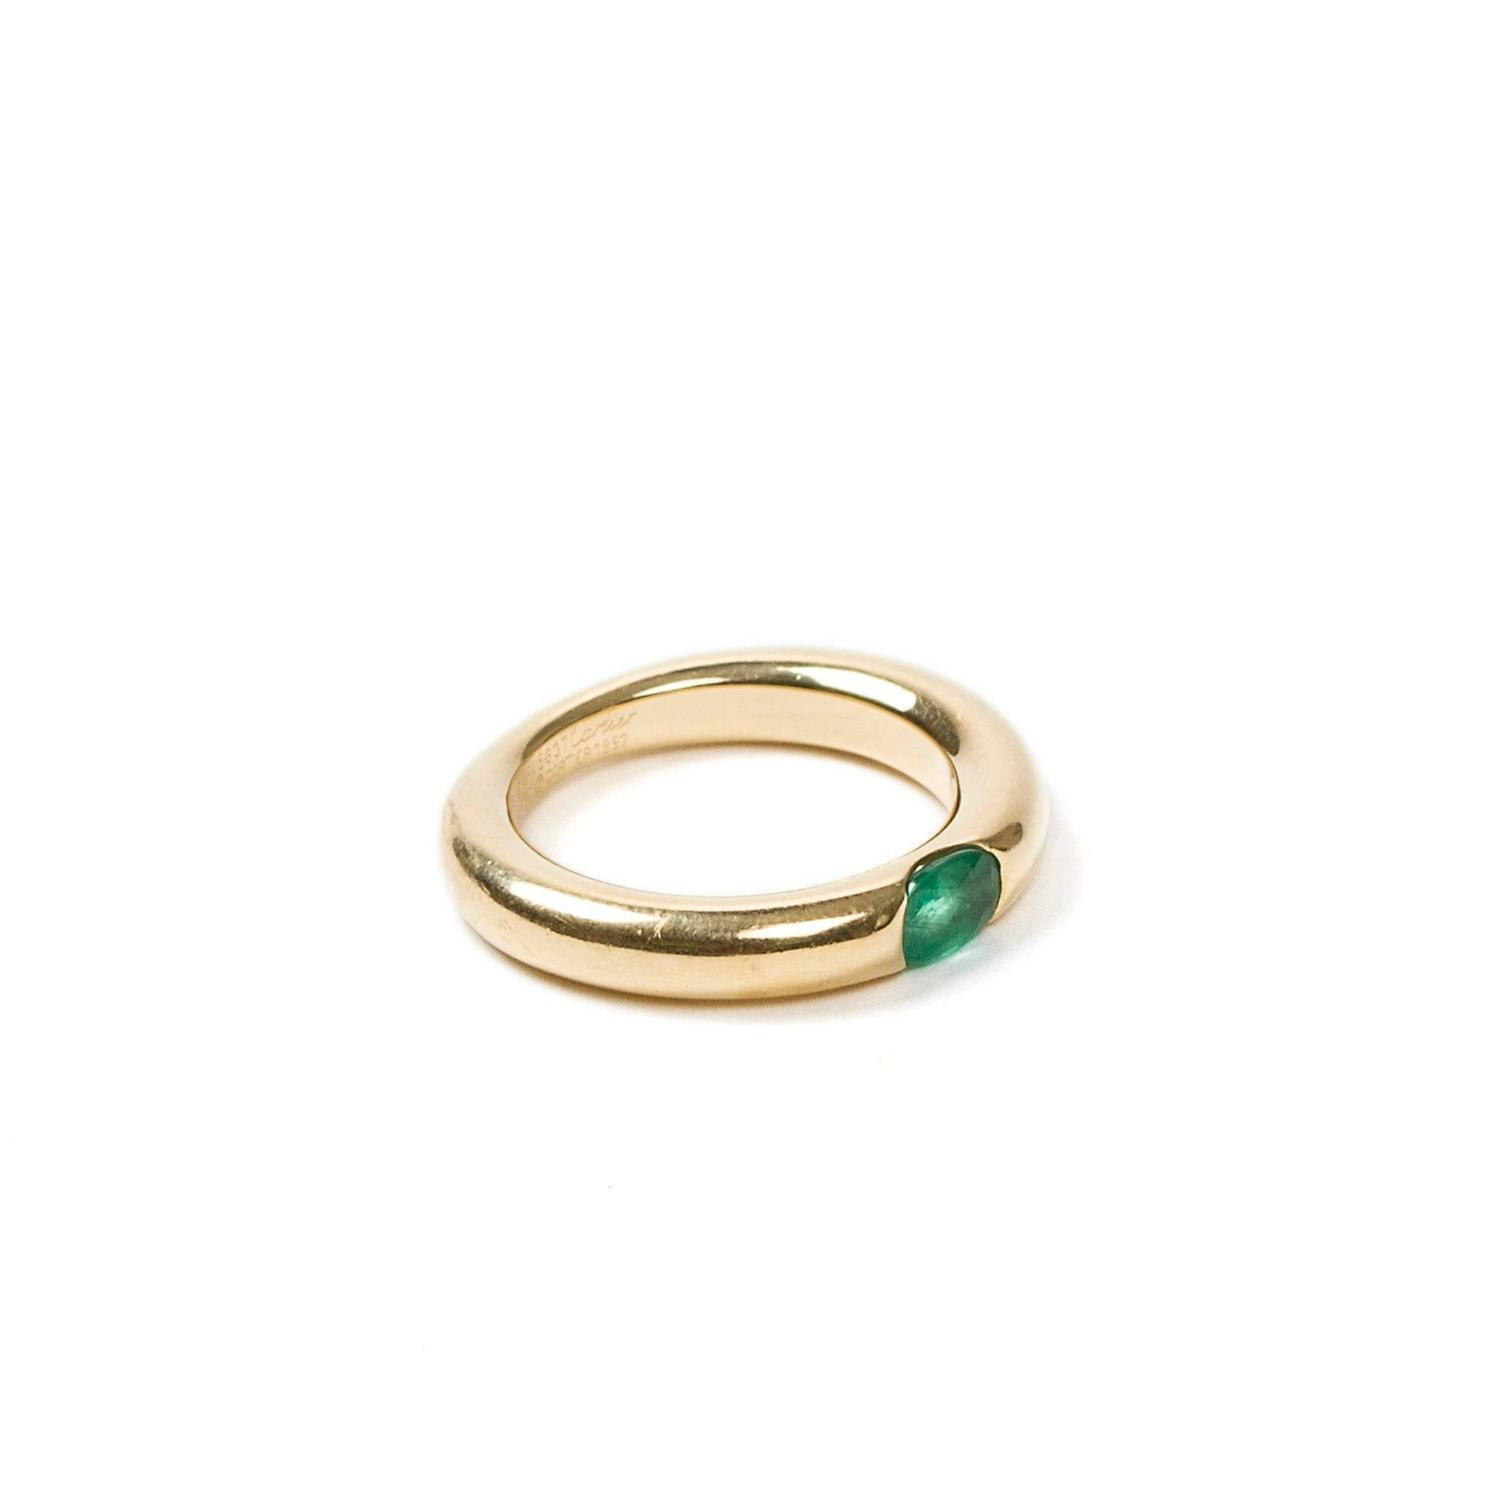 ring yellow gold emerald at 1stdibs